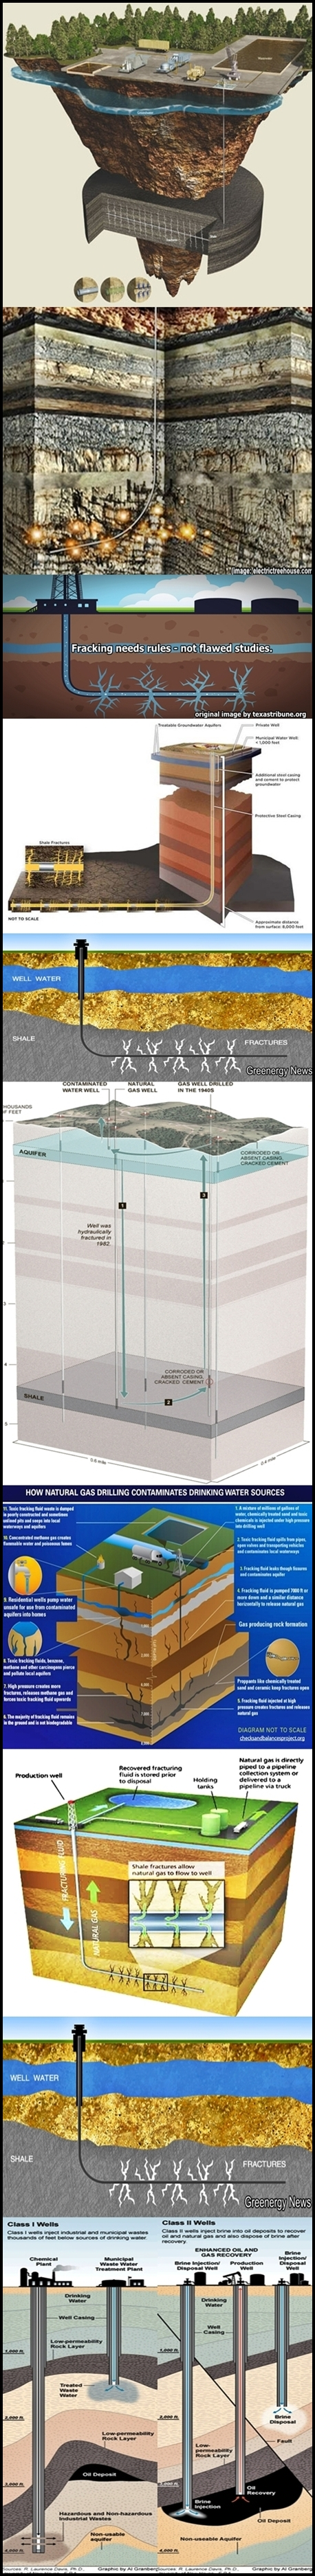 fracking defined in infografics, just what is fracking and what are the health risks of fracking and just what chemicals are used in fracking